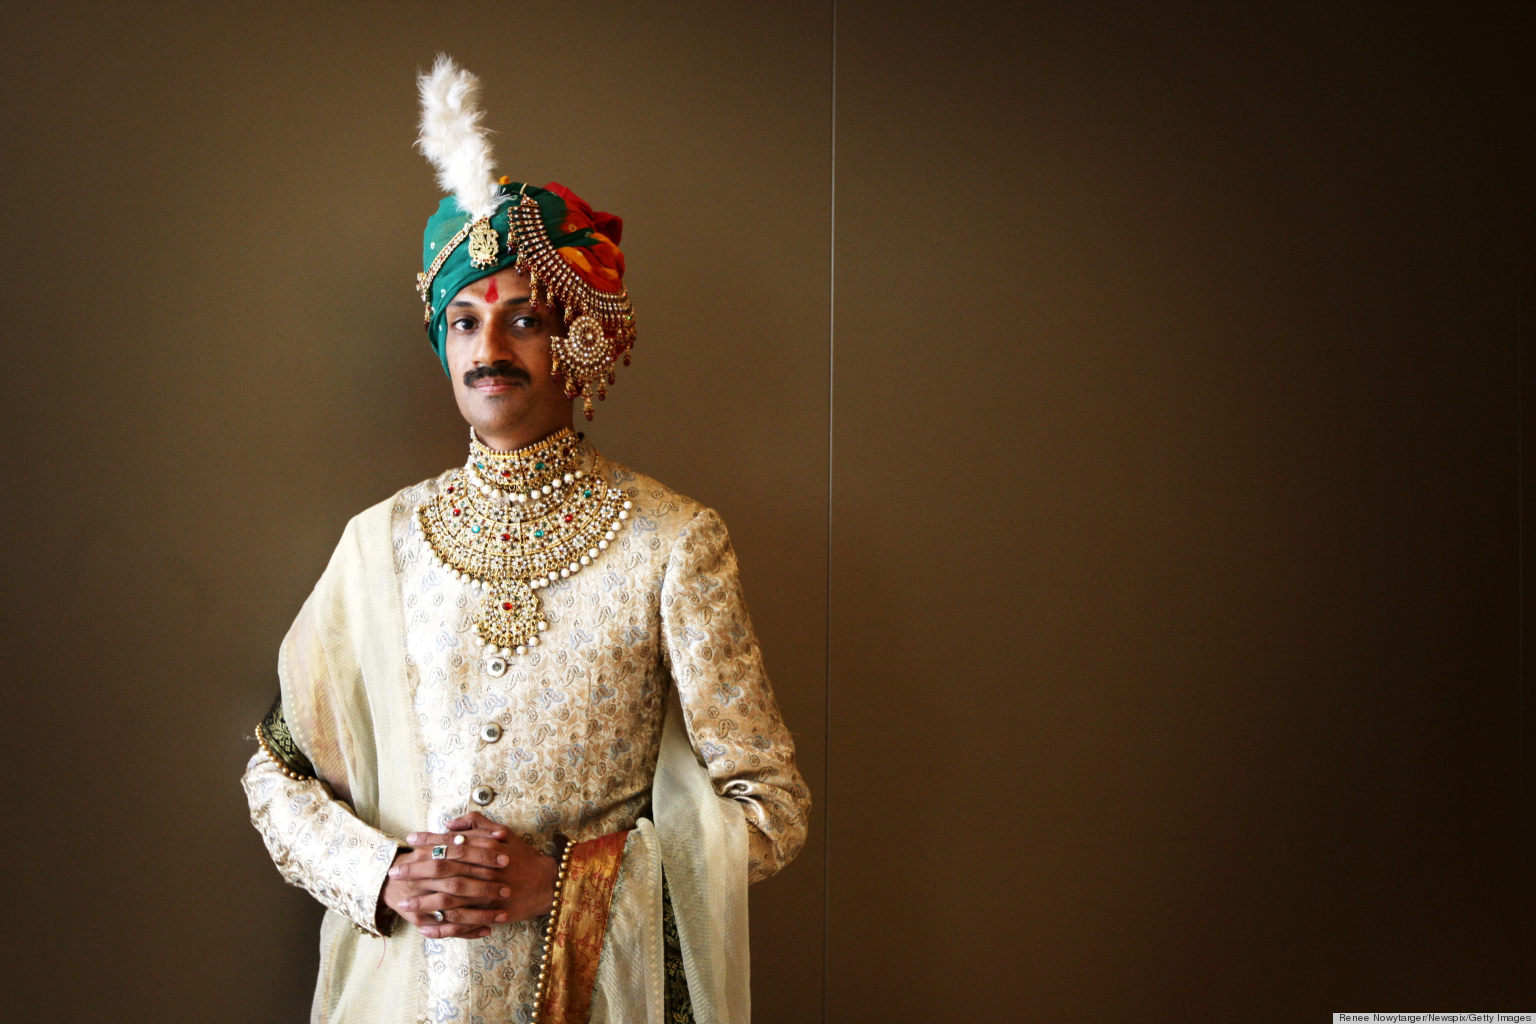 SYDNEY, AUSTRALIA - NOVEMBER 4:  (EUROPE AND AUSTRALASIA OUT) Openly gay Crown Prince Manvendra Singh Gohil of the state of Rajpipla in Gujarat, India makes a visit to Australia to raise awareness about HIV prevention and to campaign for changes to laws that criminalise homosexuality in many Asia Pacific countries. (Photo by Renee Nowytarger/Newspix/Getty Images)